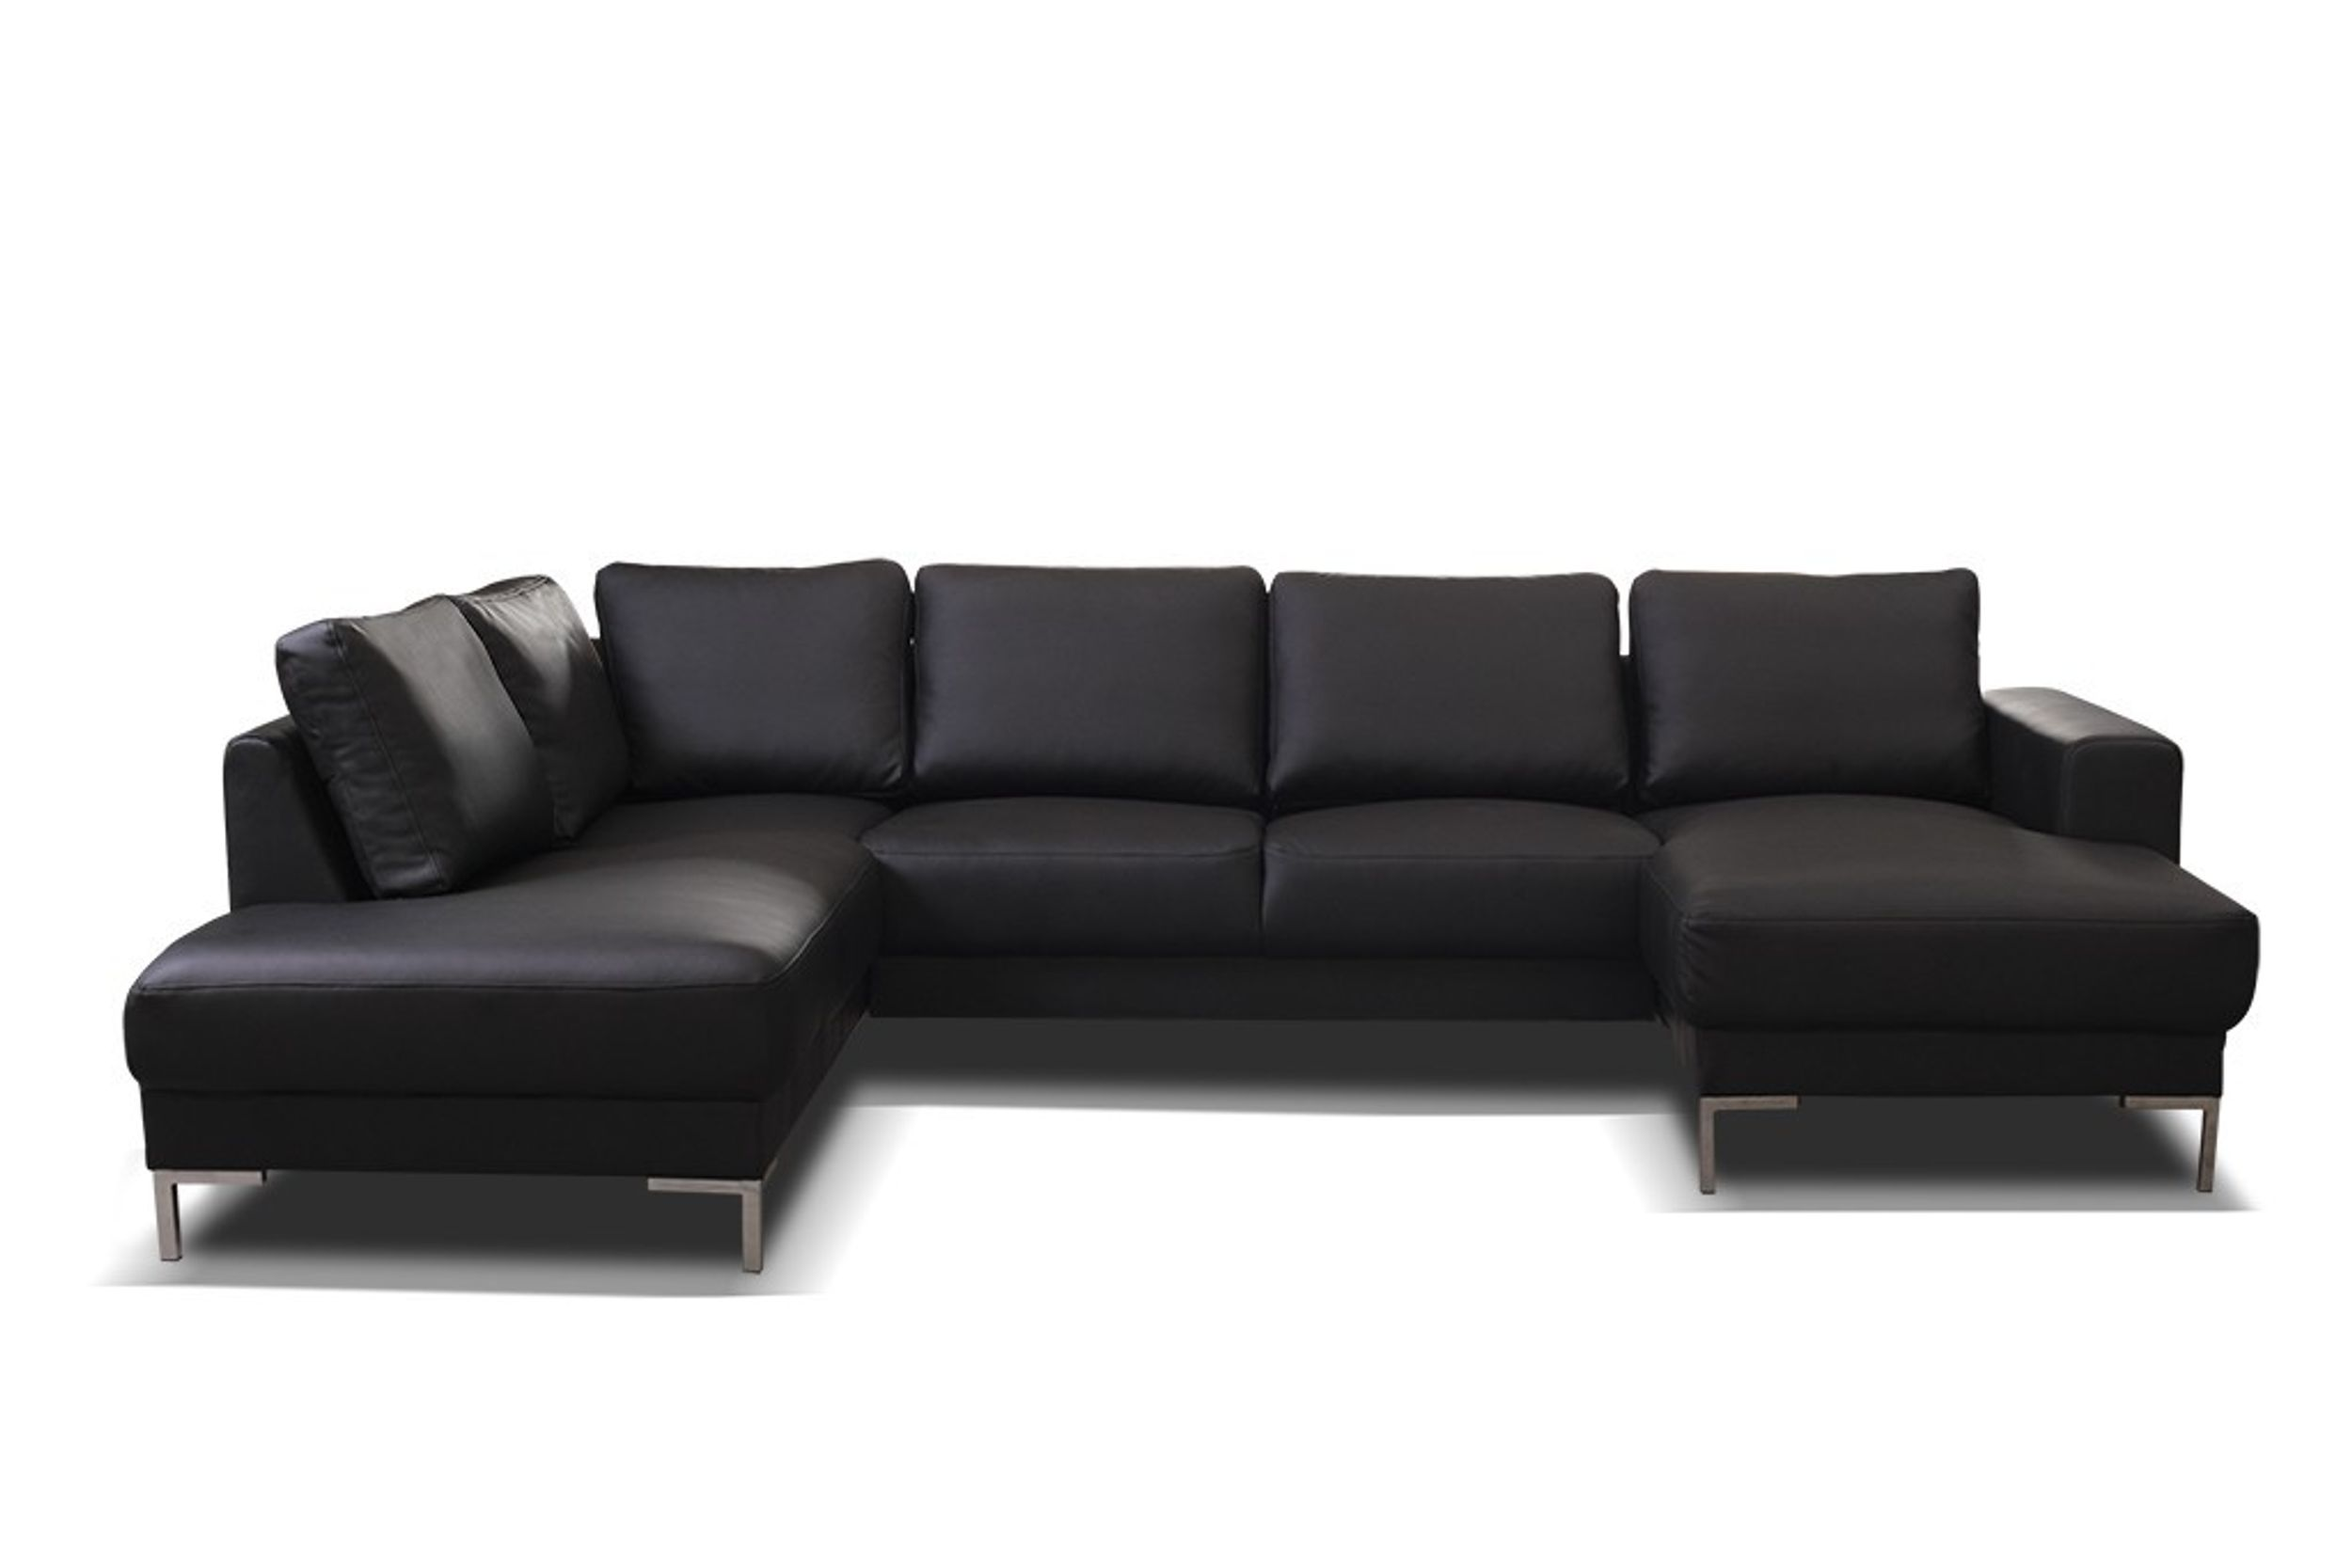 Top sofa couch ecksofa eckcouch wohnlandschaft in for Sofa 70 cm profundidad